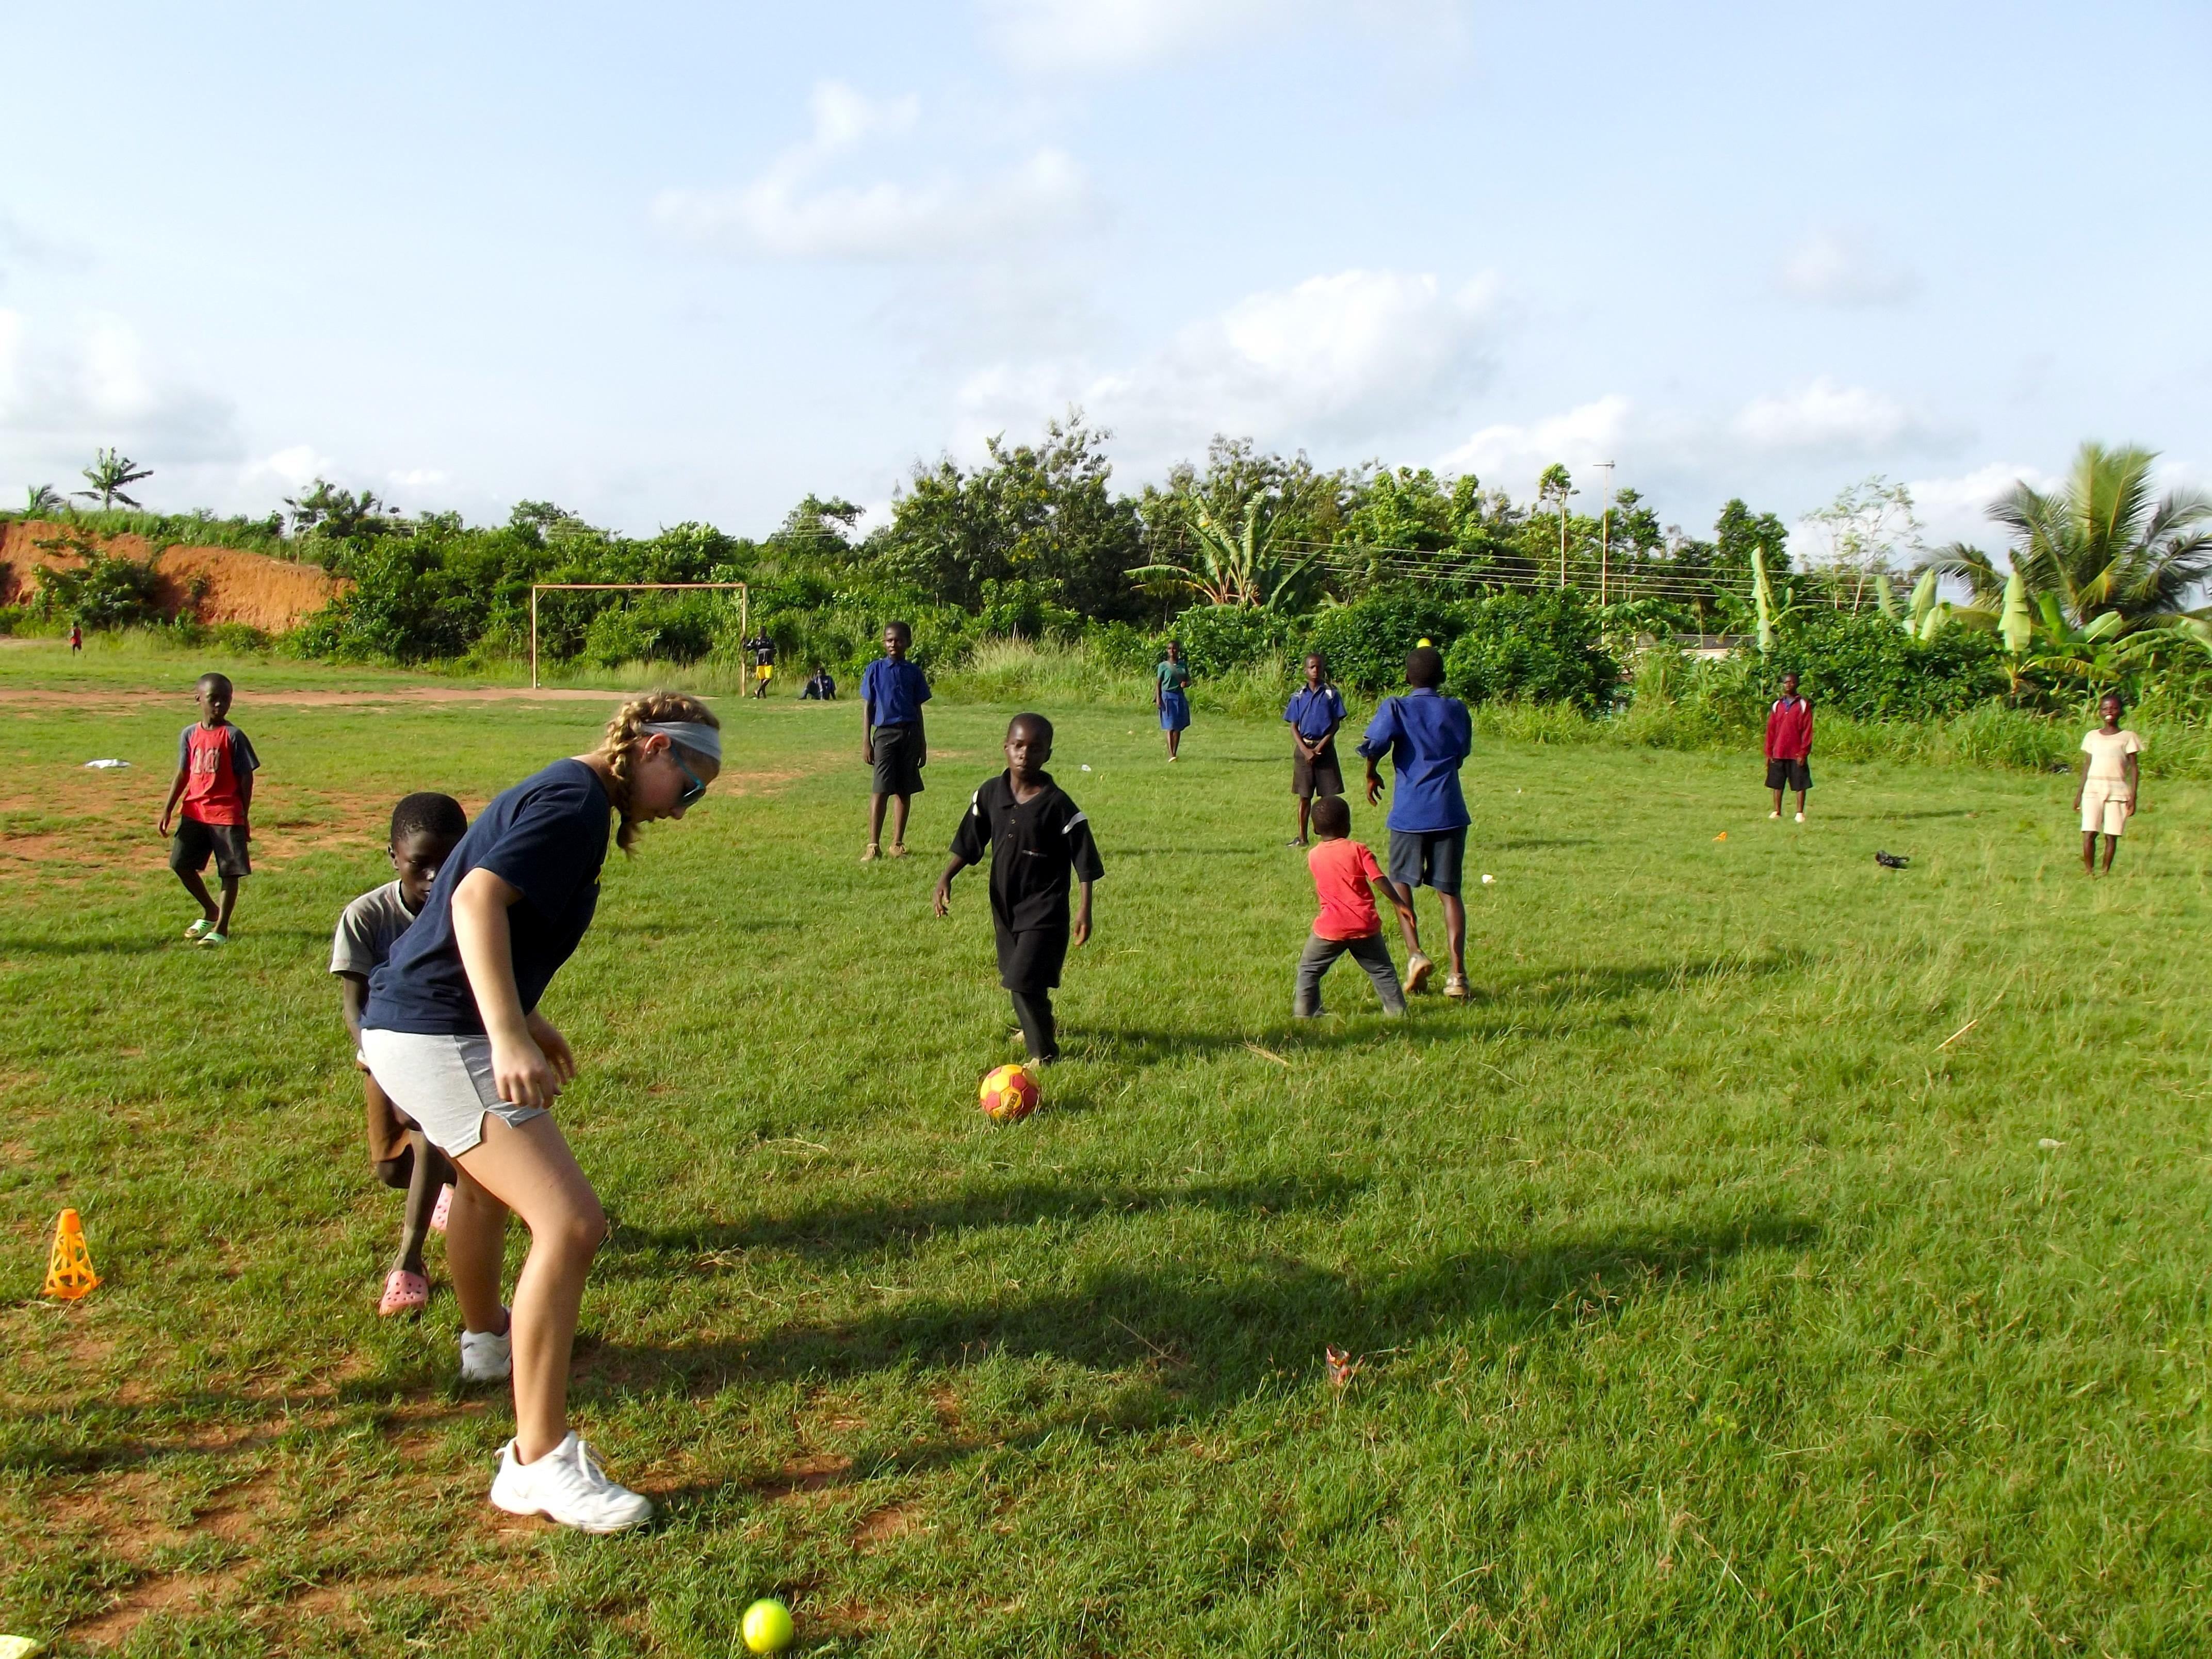 Projects Abroad volunteers taking part in football coaching for high school students in Ghana help improve the skills of their students.